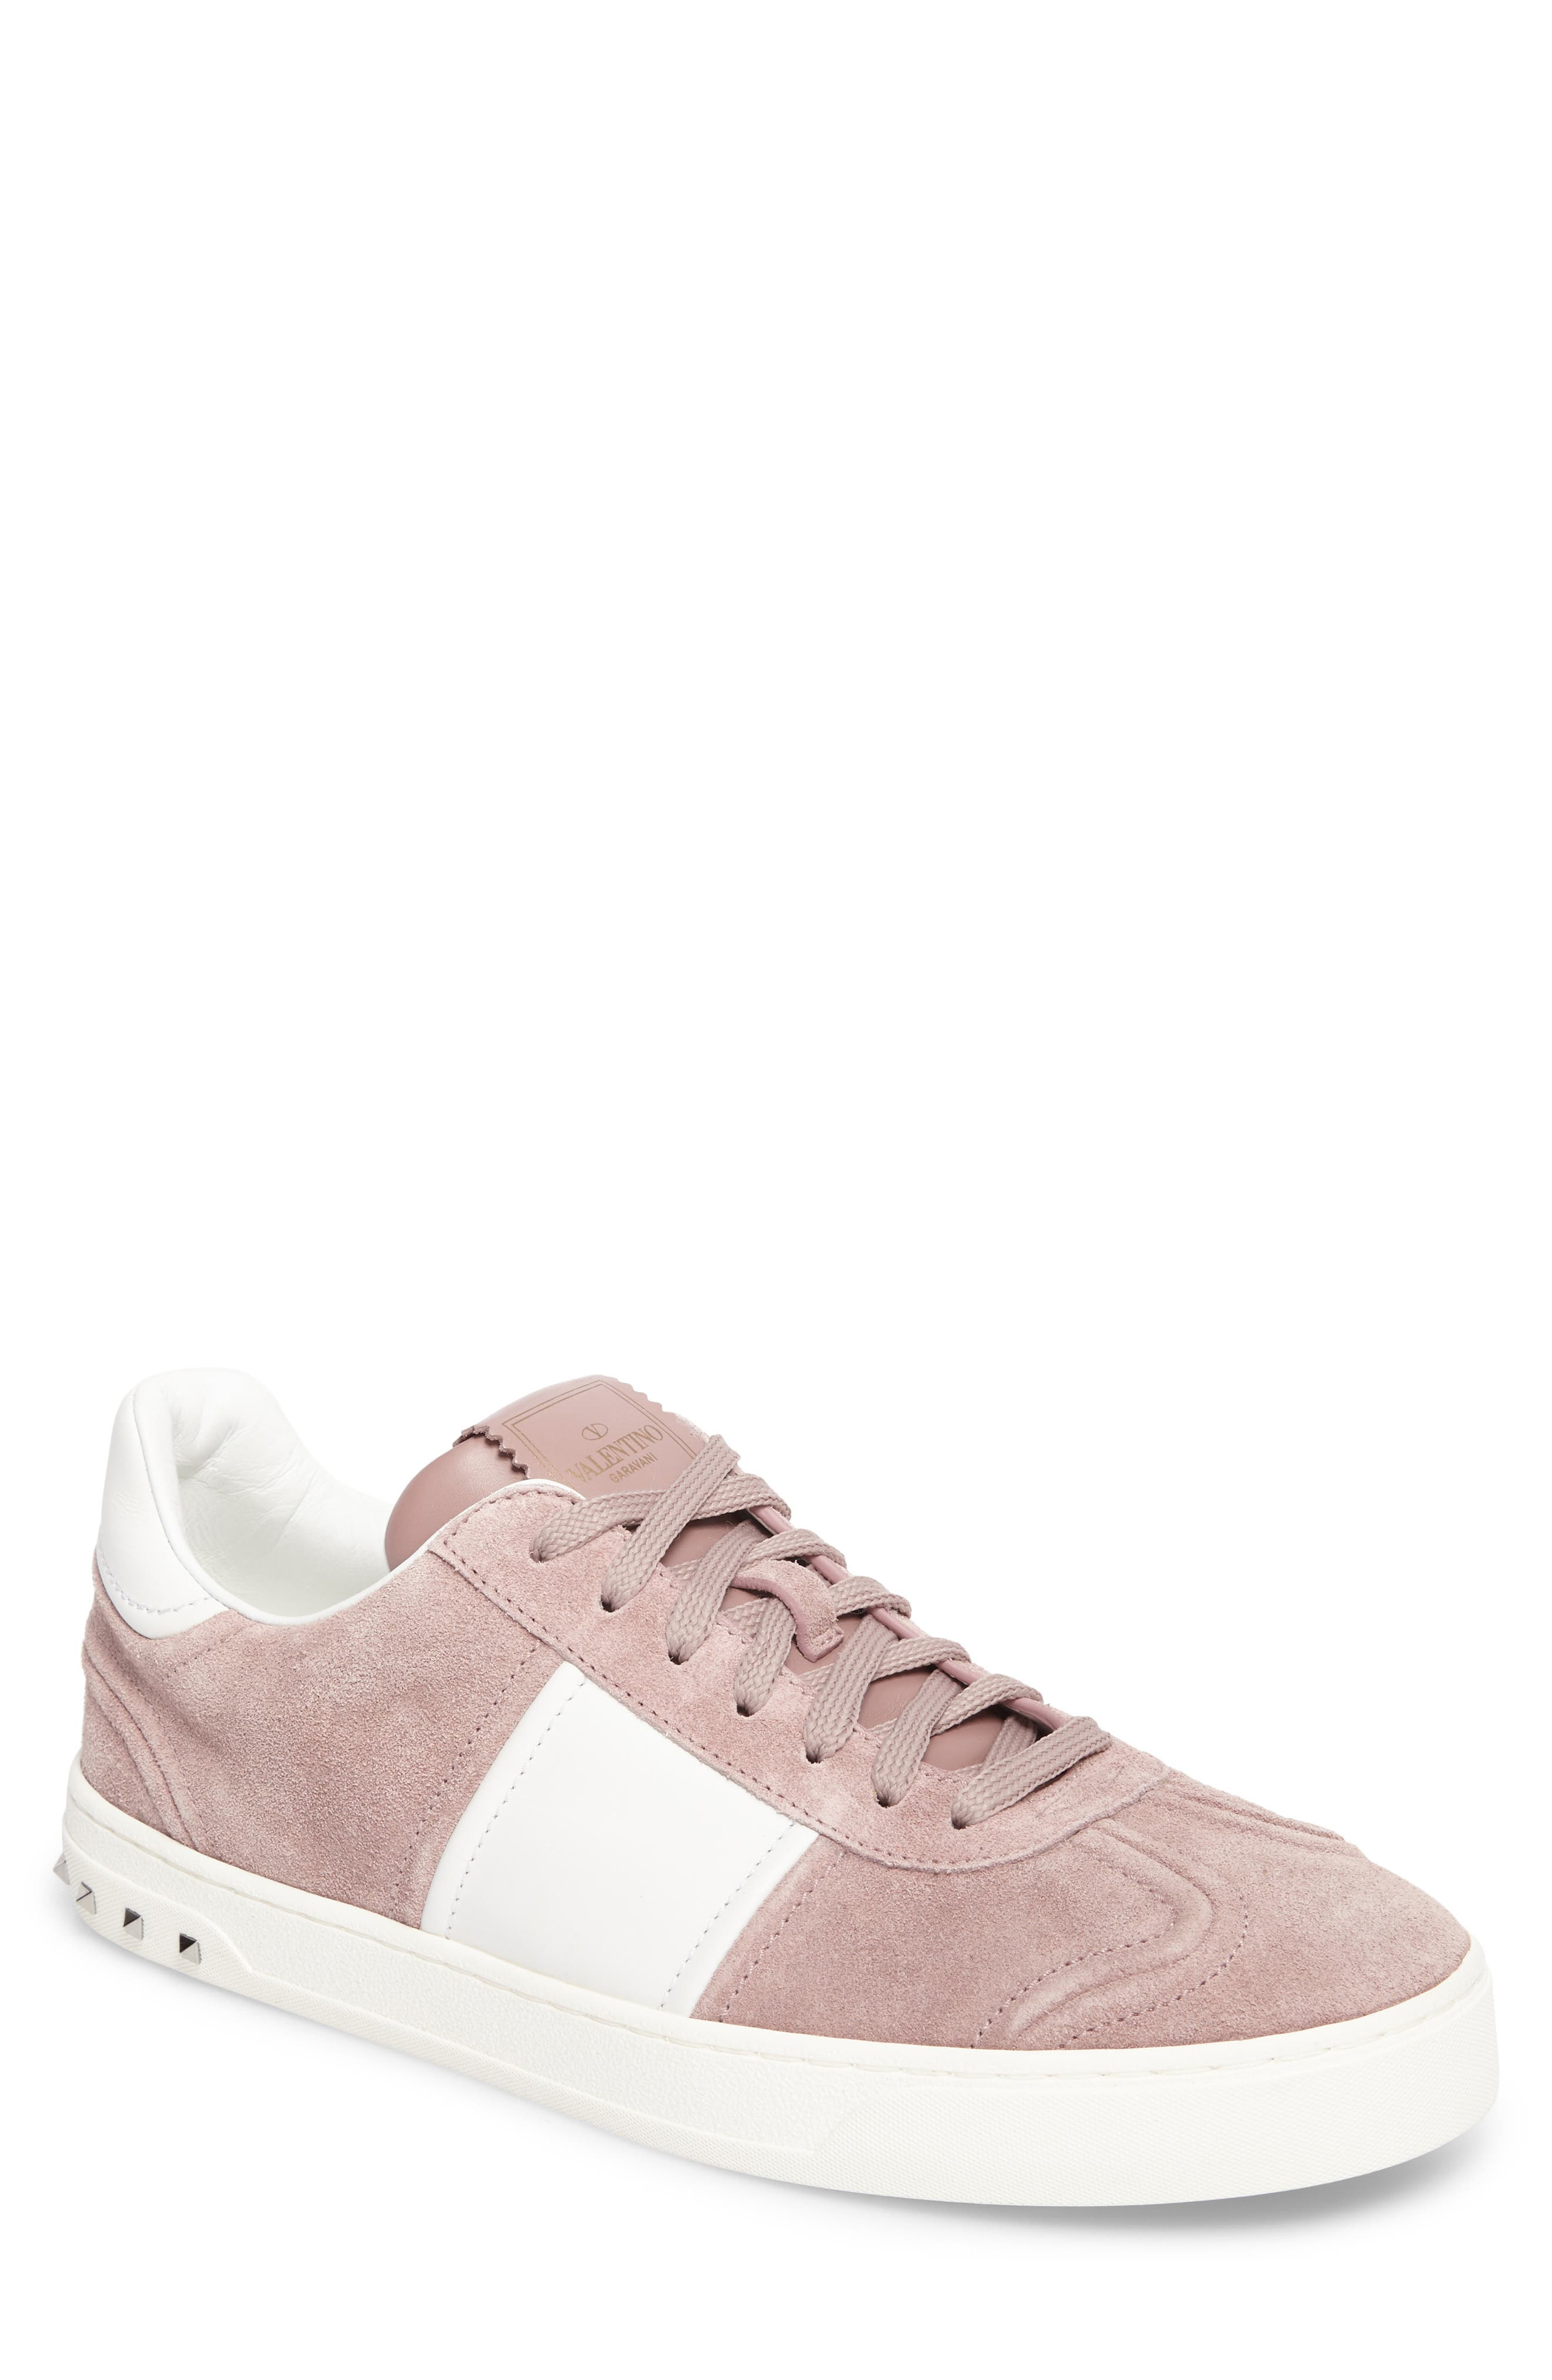 Fly Crew Sneaker,                             Main thumbnail 1, color,                             633